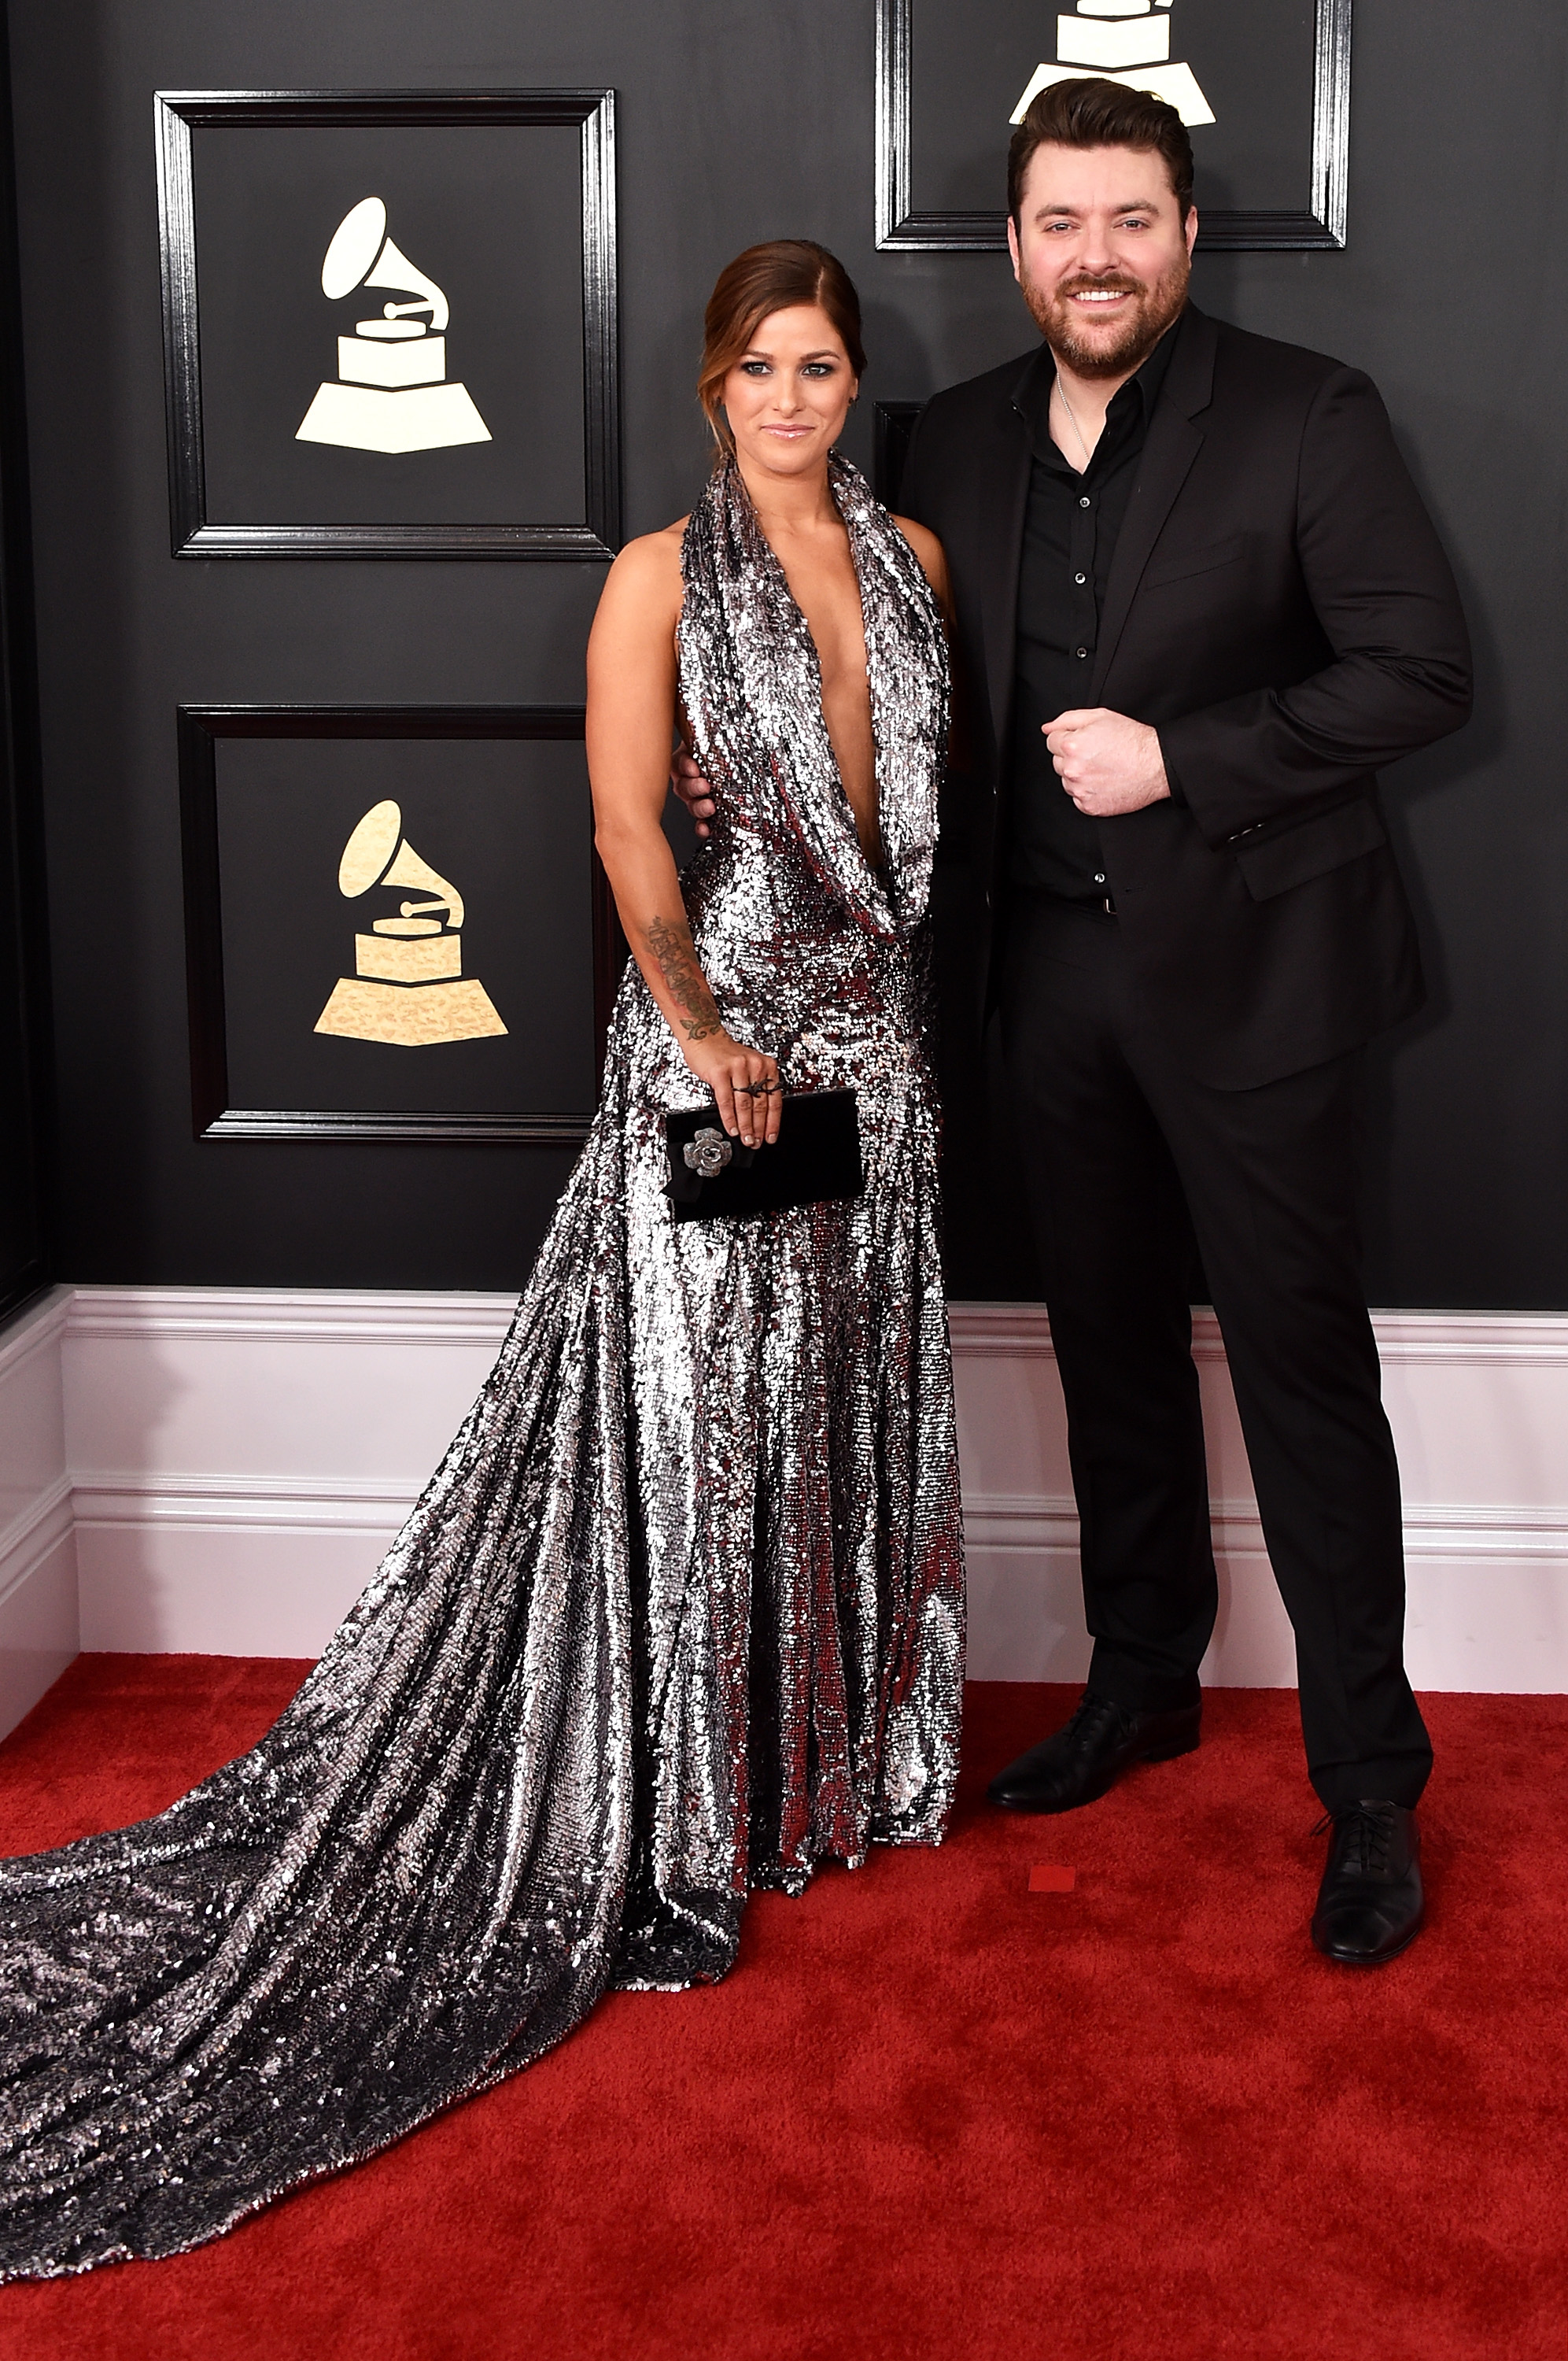 Cassadee Pope and Chris Young attend The 59th GRAMMY Awards; Photo by John Shearer/WireImage